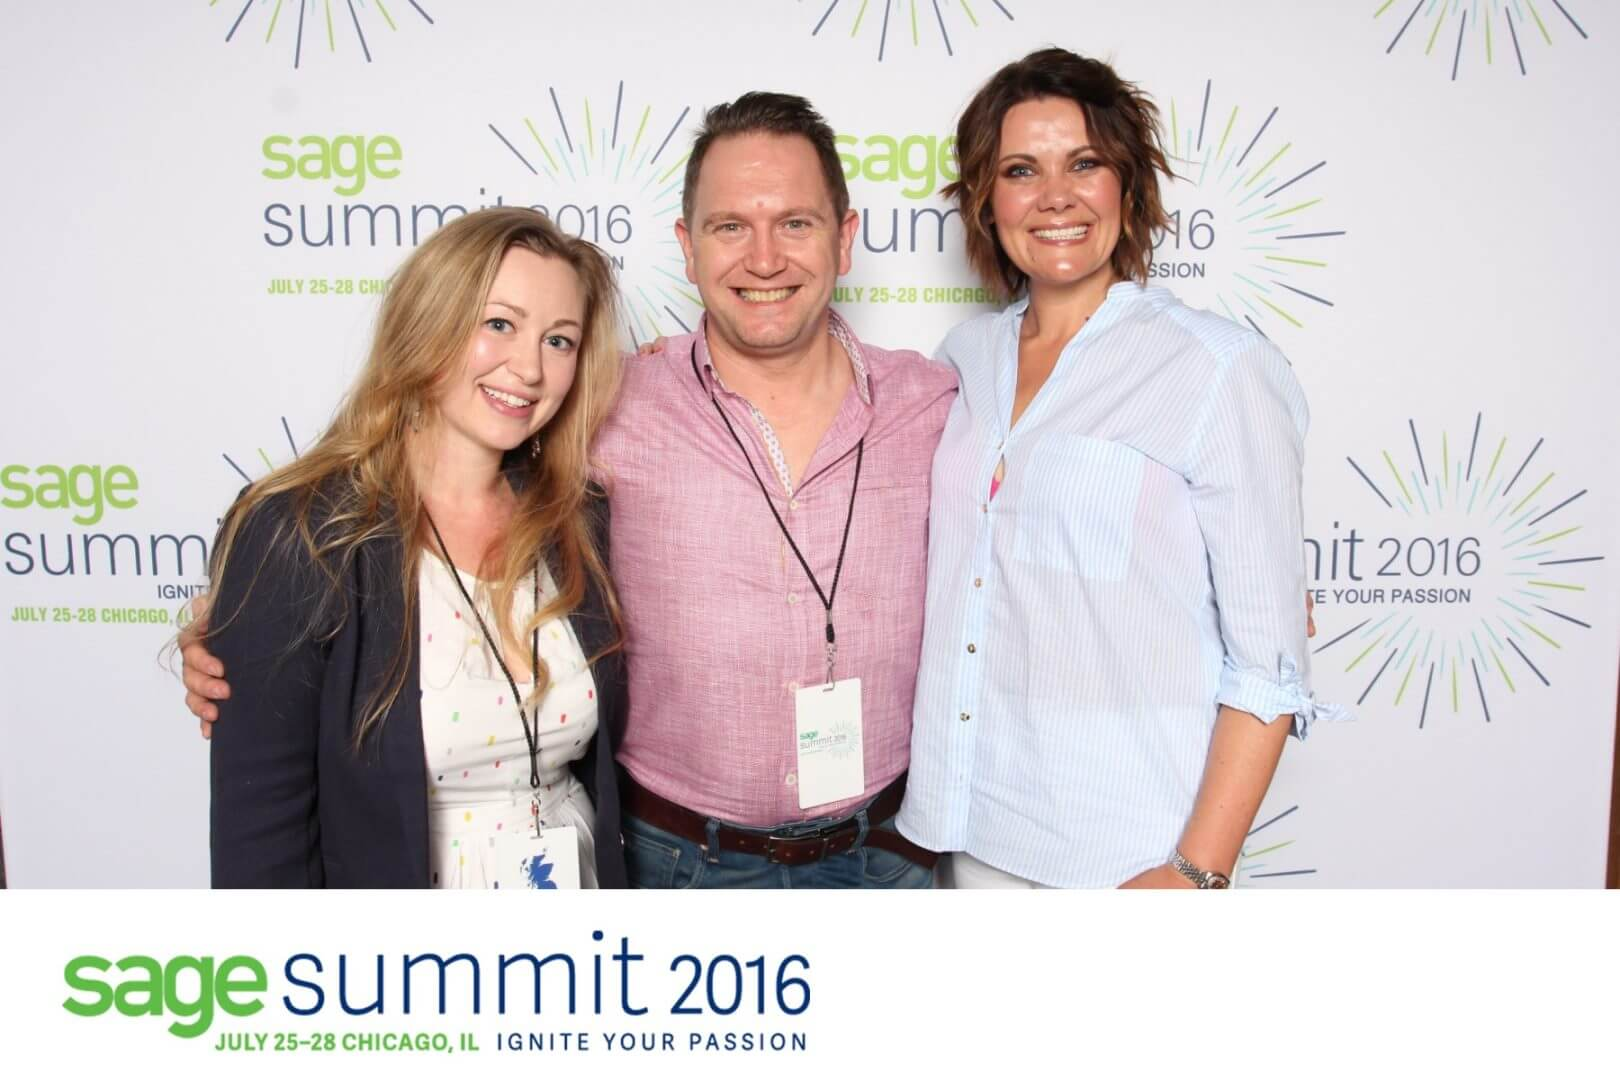 An Open Letter To Stephen Kelly and the Sage Summit Team